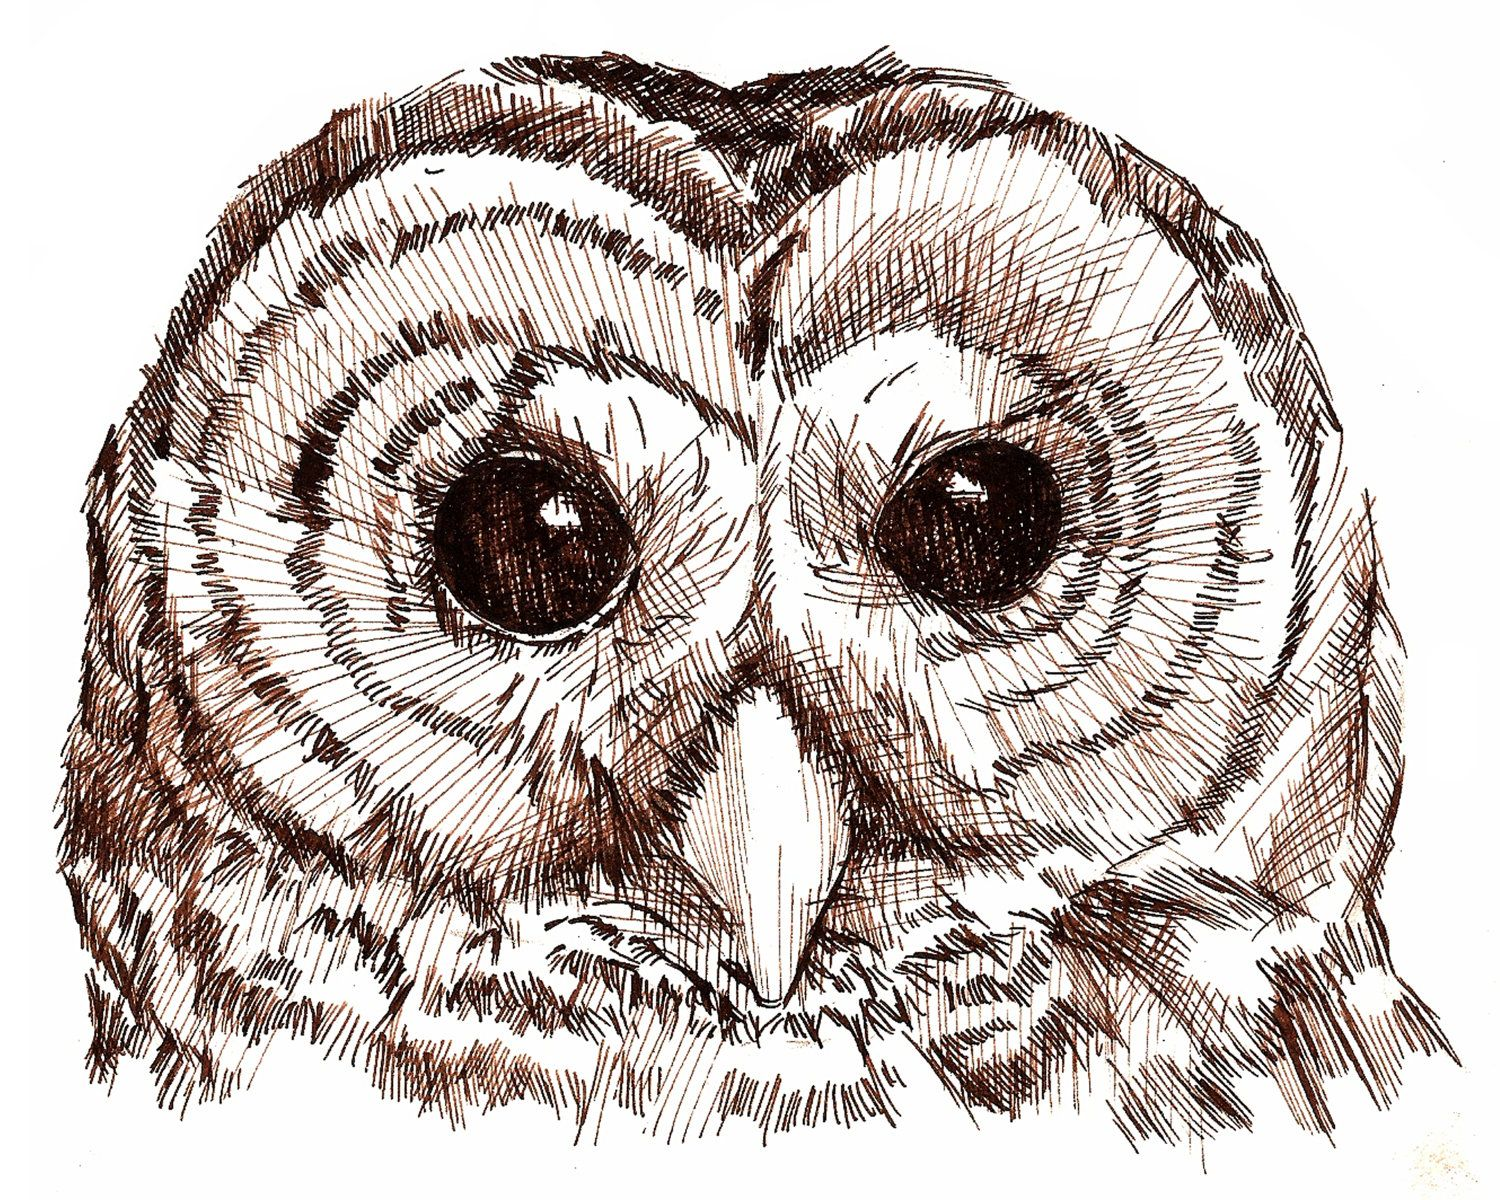 I can't remember what kind of owl this is, but I love it